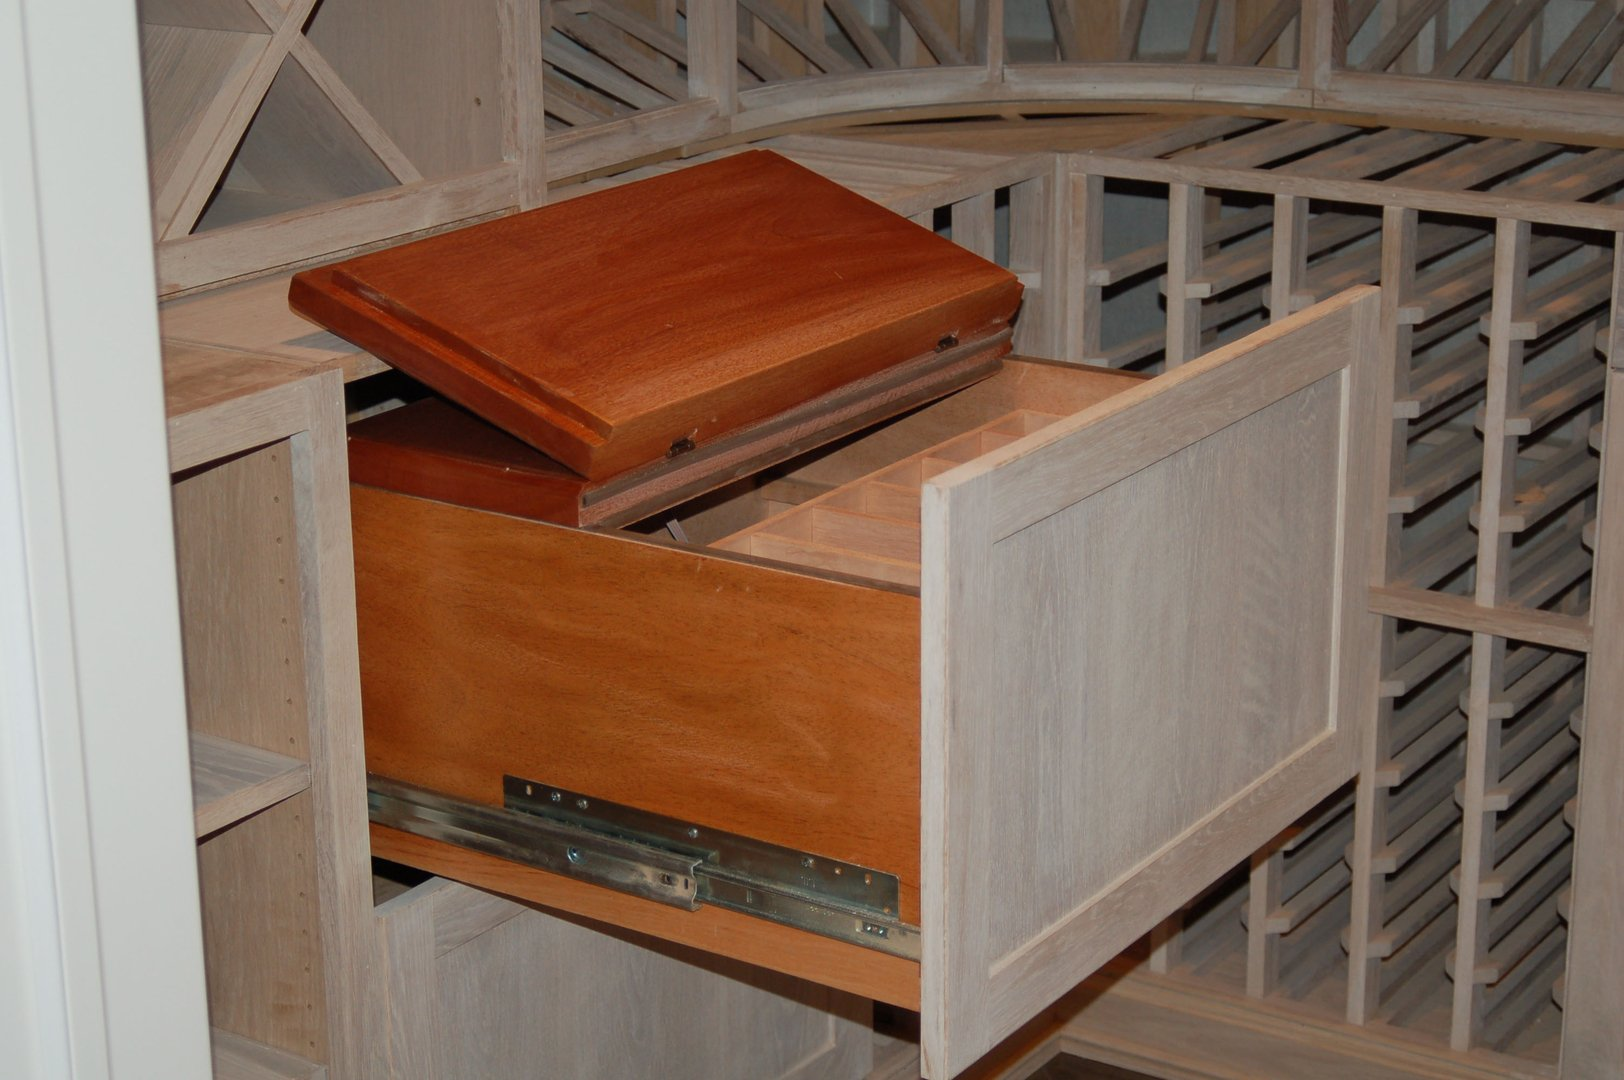 Beachside - Closeup of Humidor